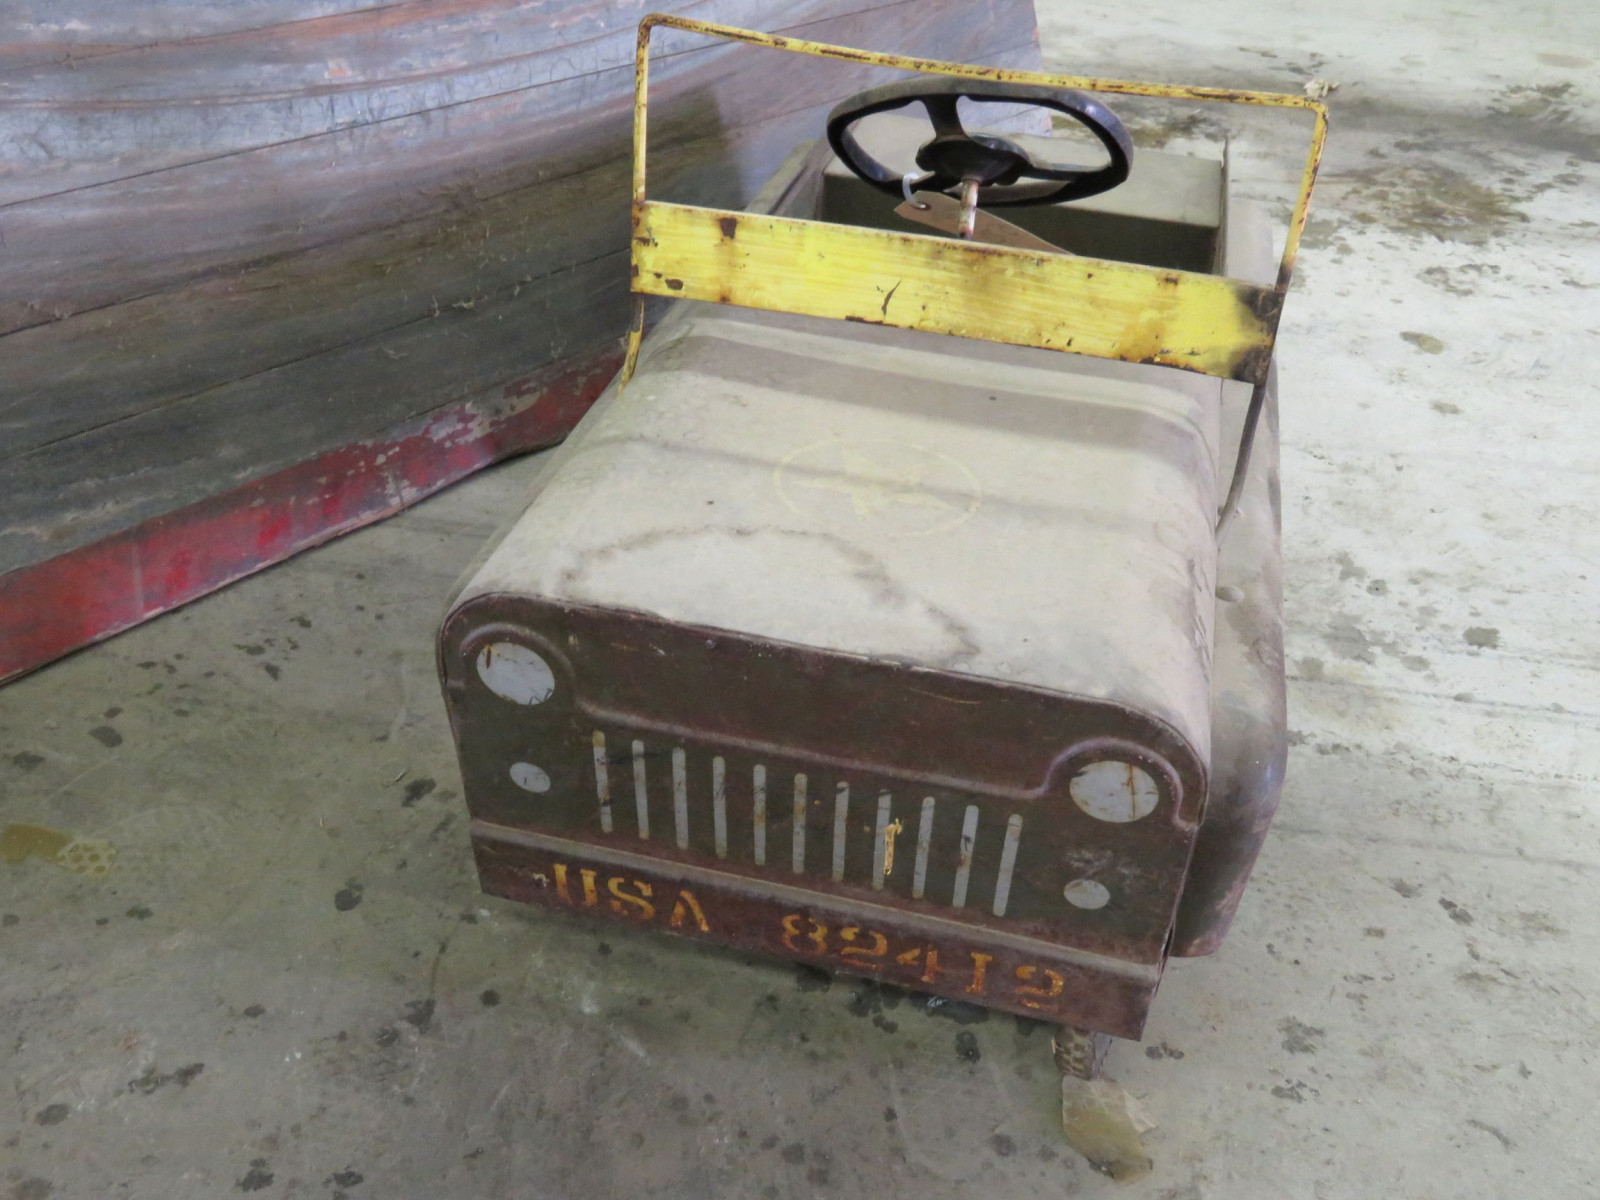 Vintage Garton Military Jeep Pedal Car for restore - Image 2